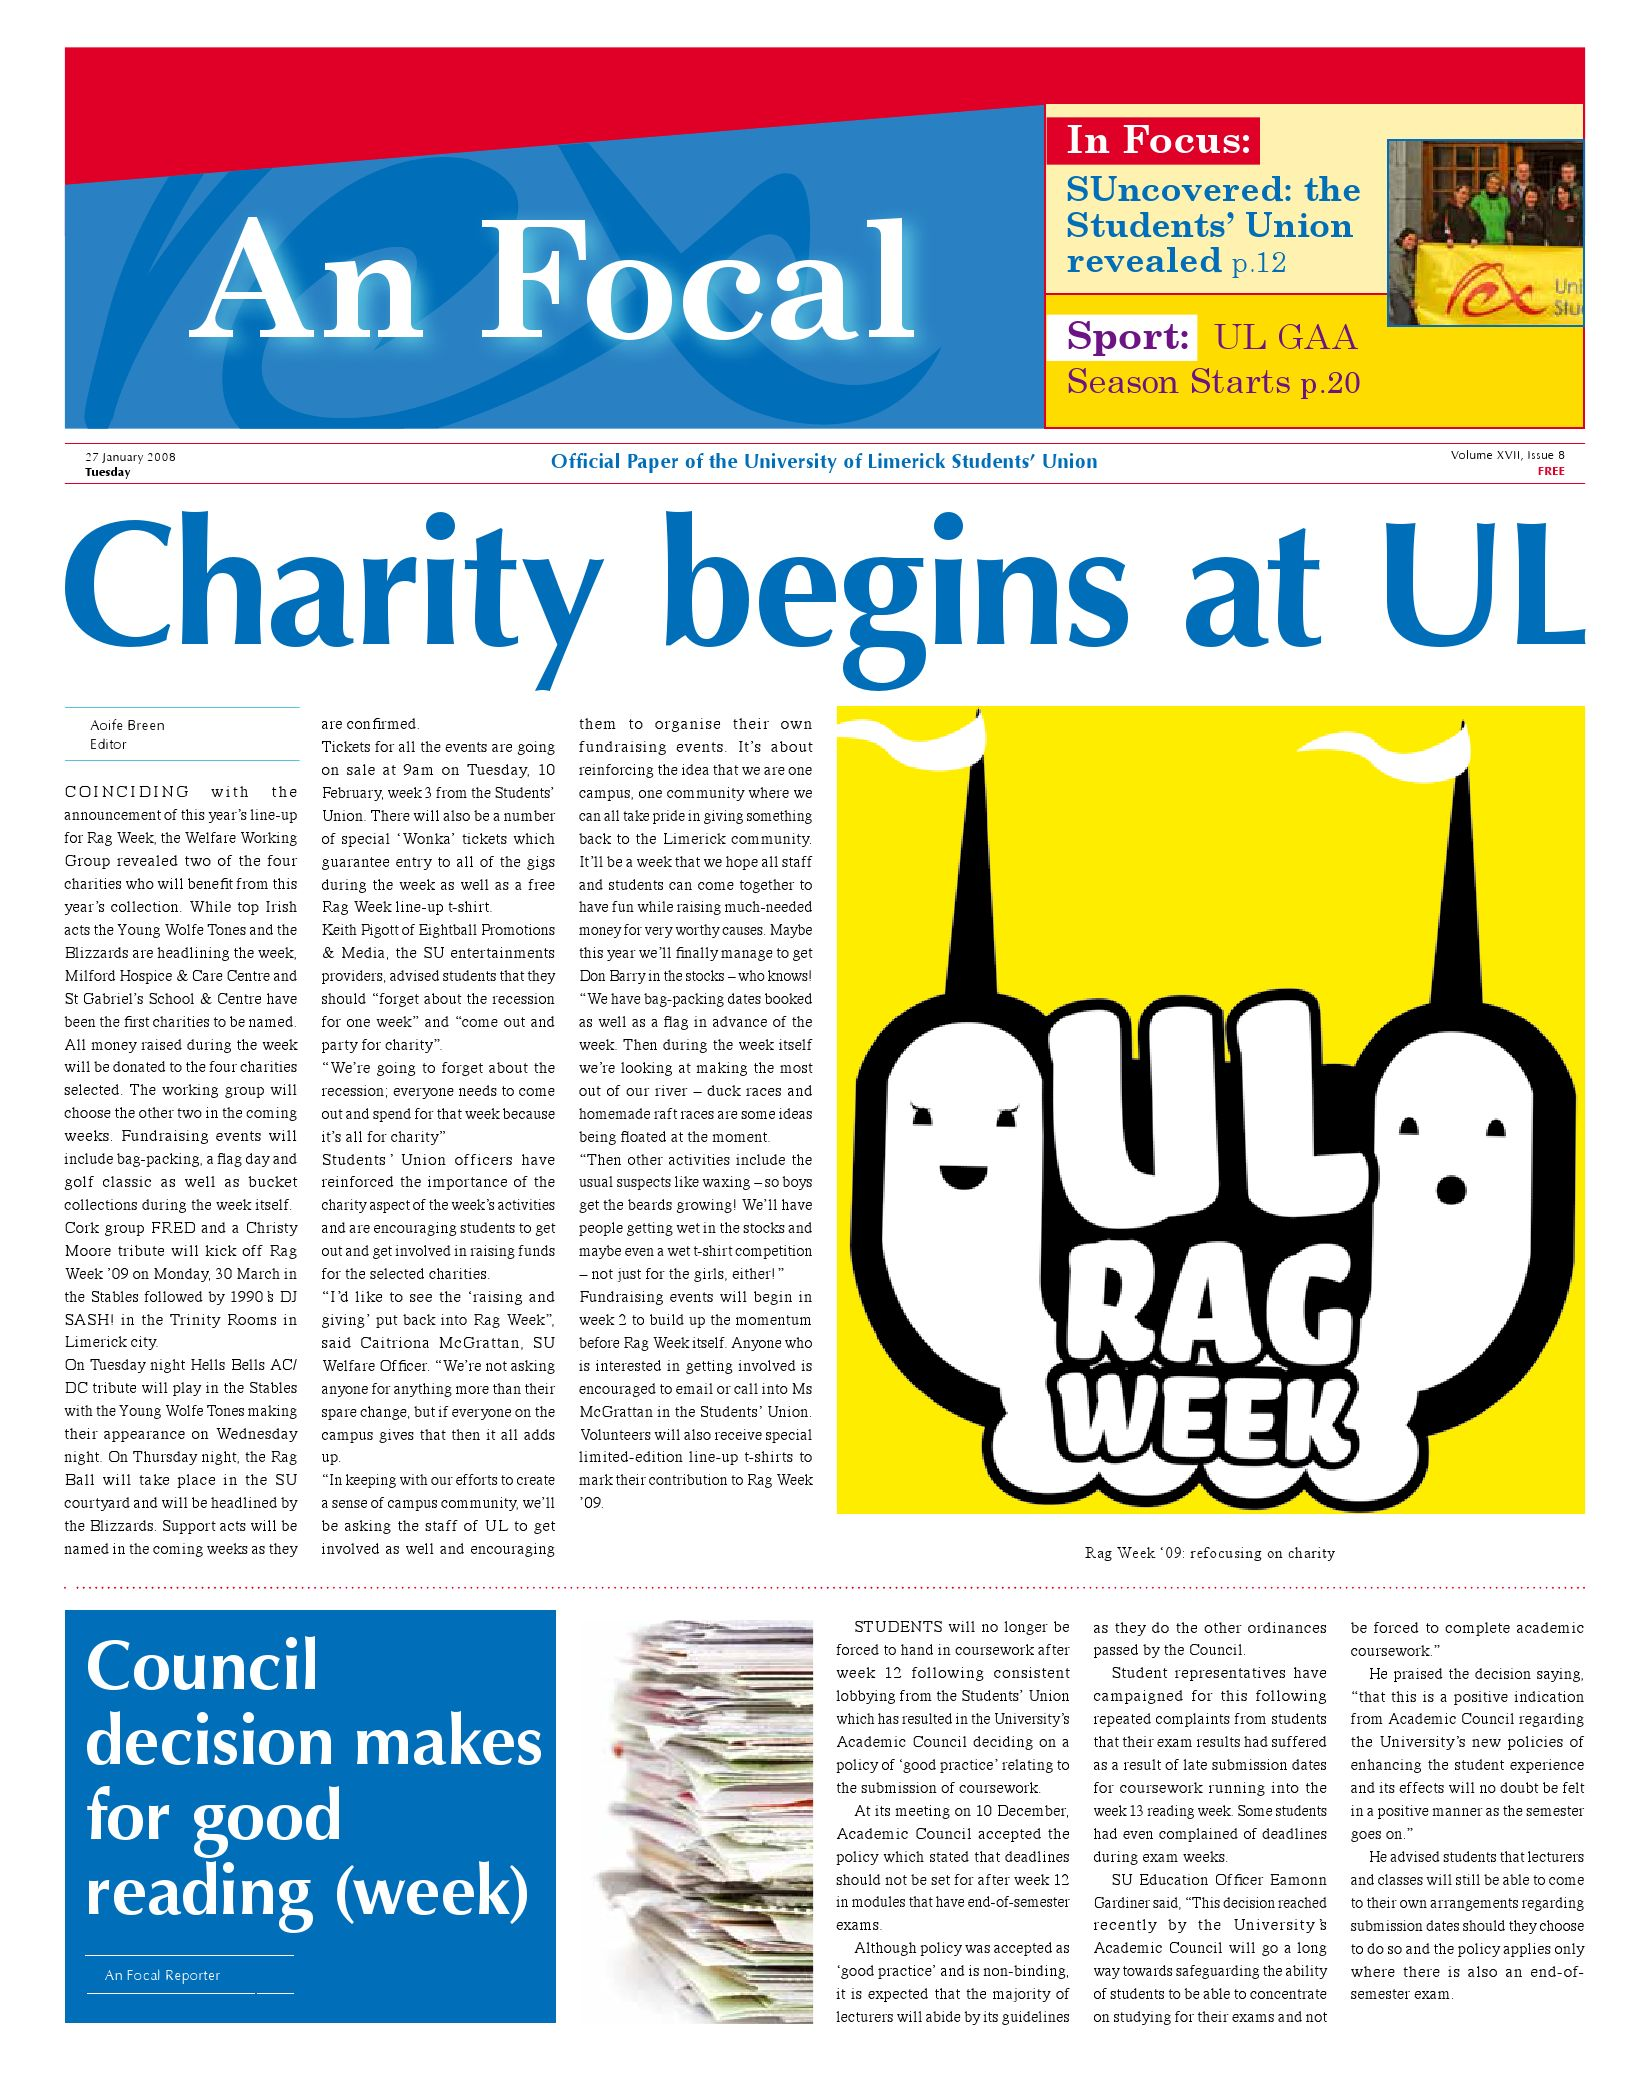 An Focal Volume XVII Issue 8 by An Focal ULSU - issuu